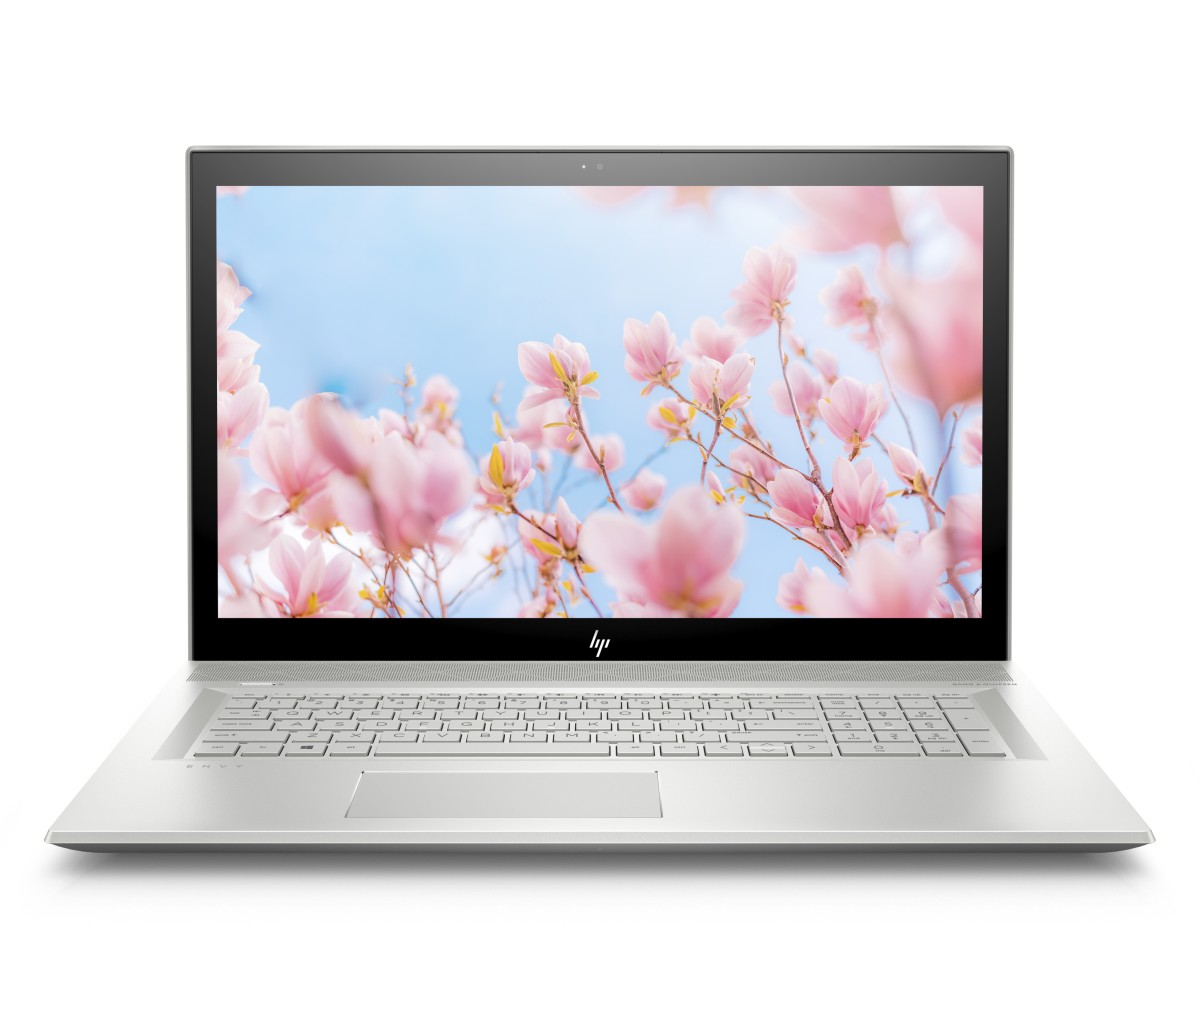 "HP NTB Envy 17-bw0007nc/17,3"" FHD AG/Intel i7-8550U/16GB/512GB SSD/MX 150/DVDRW/Win 10 Home/Natural-silver"